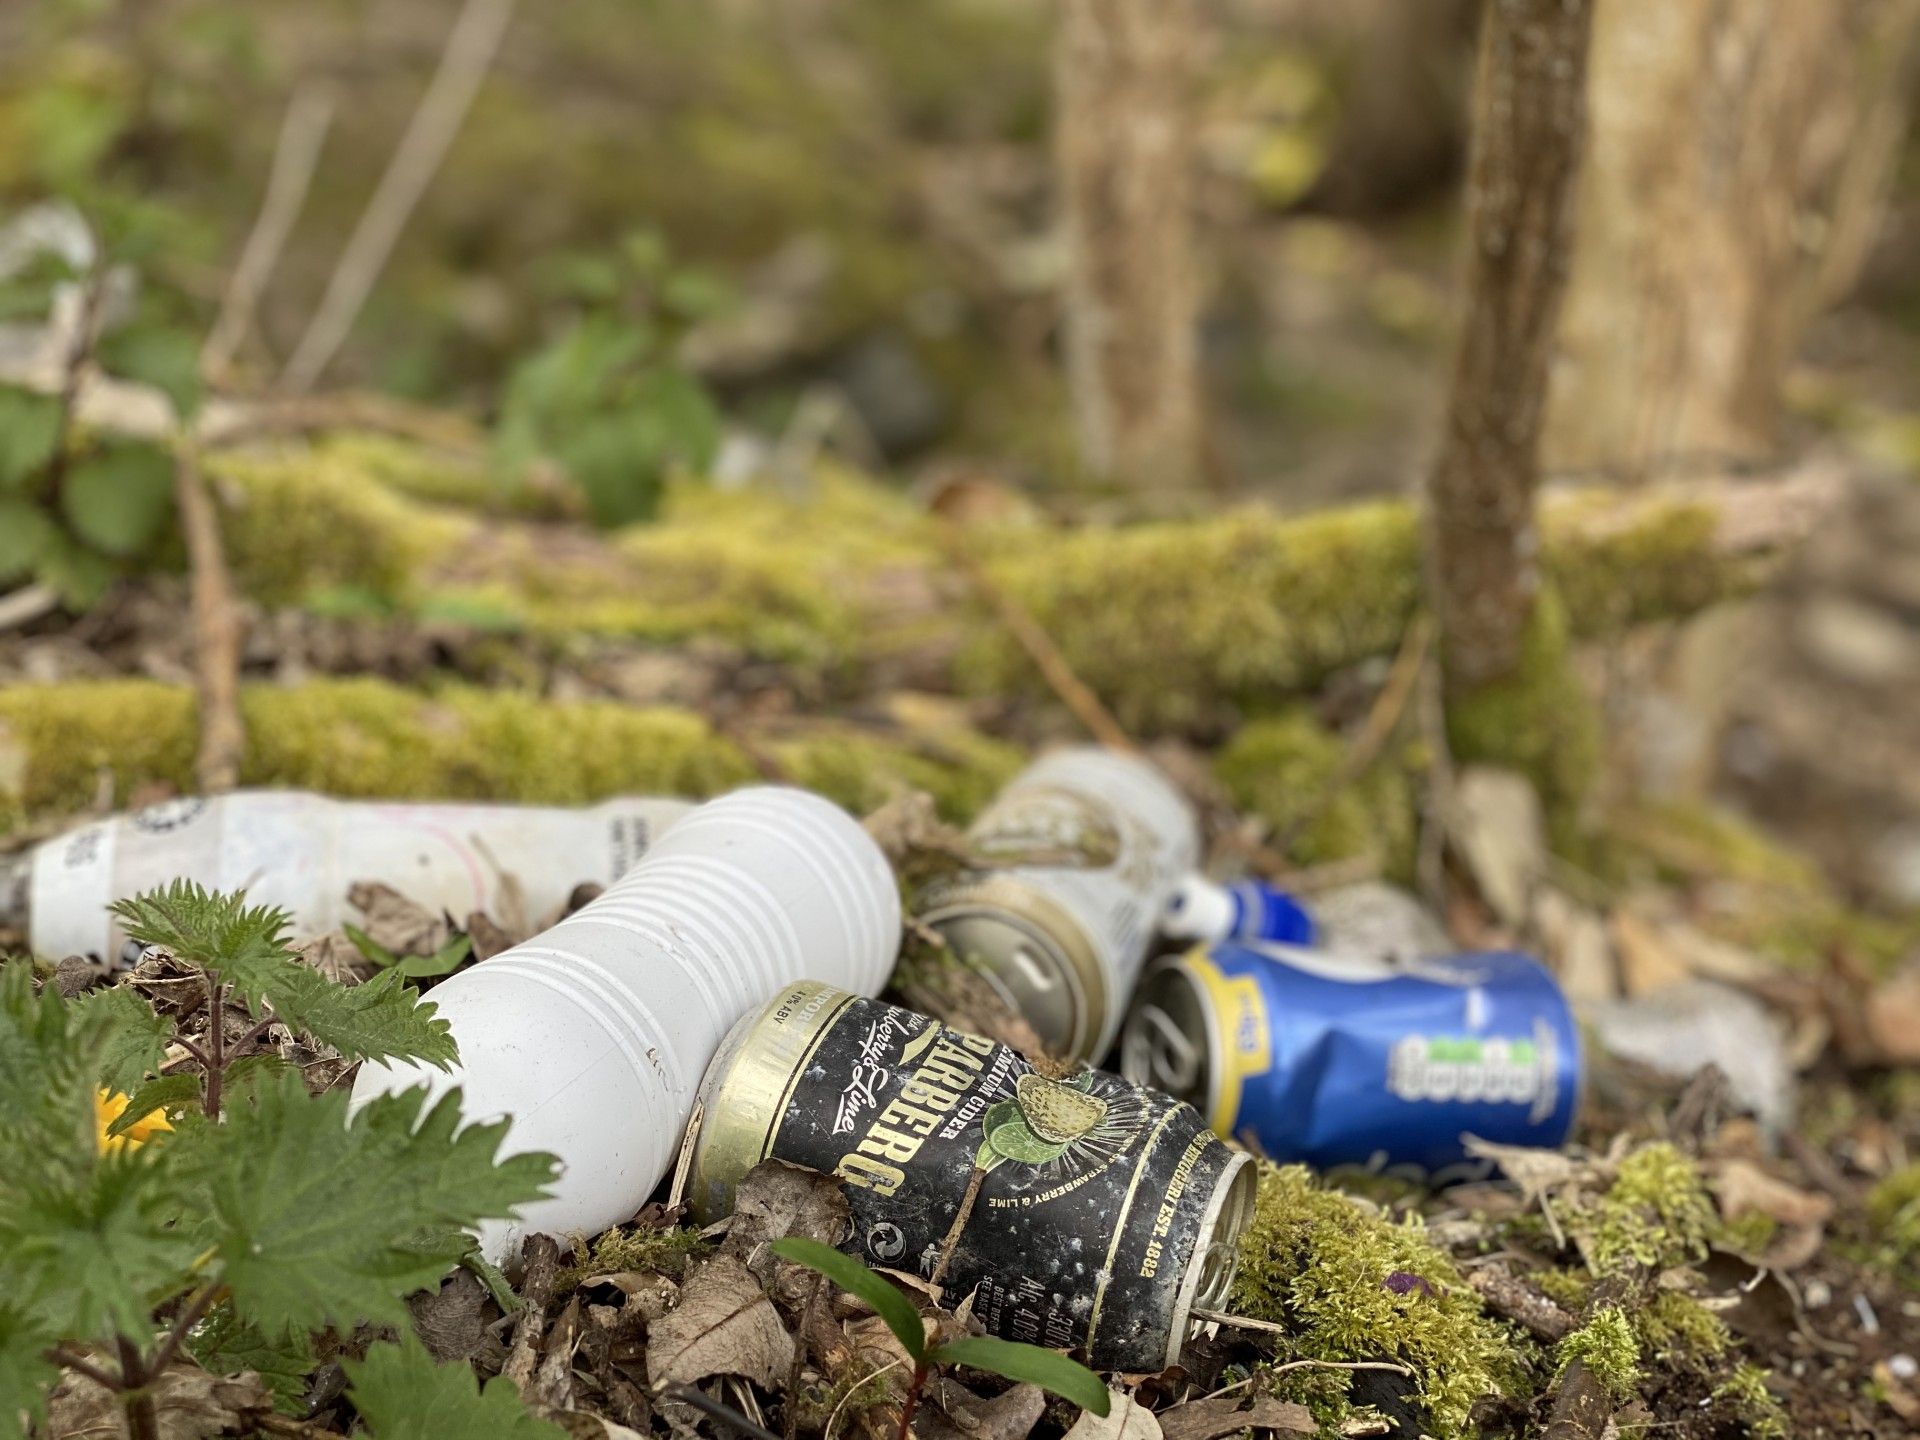 Tins and plastic on the forest floor.